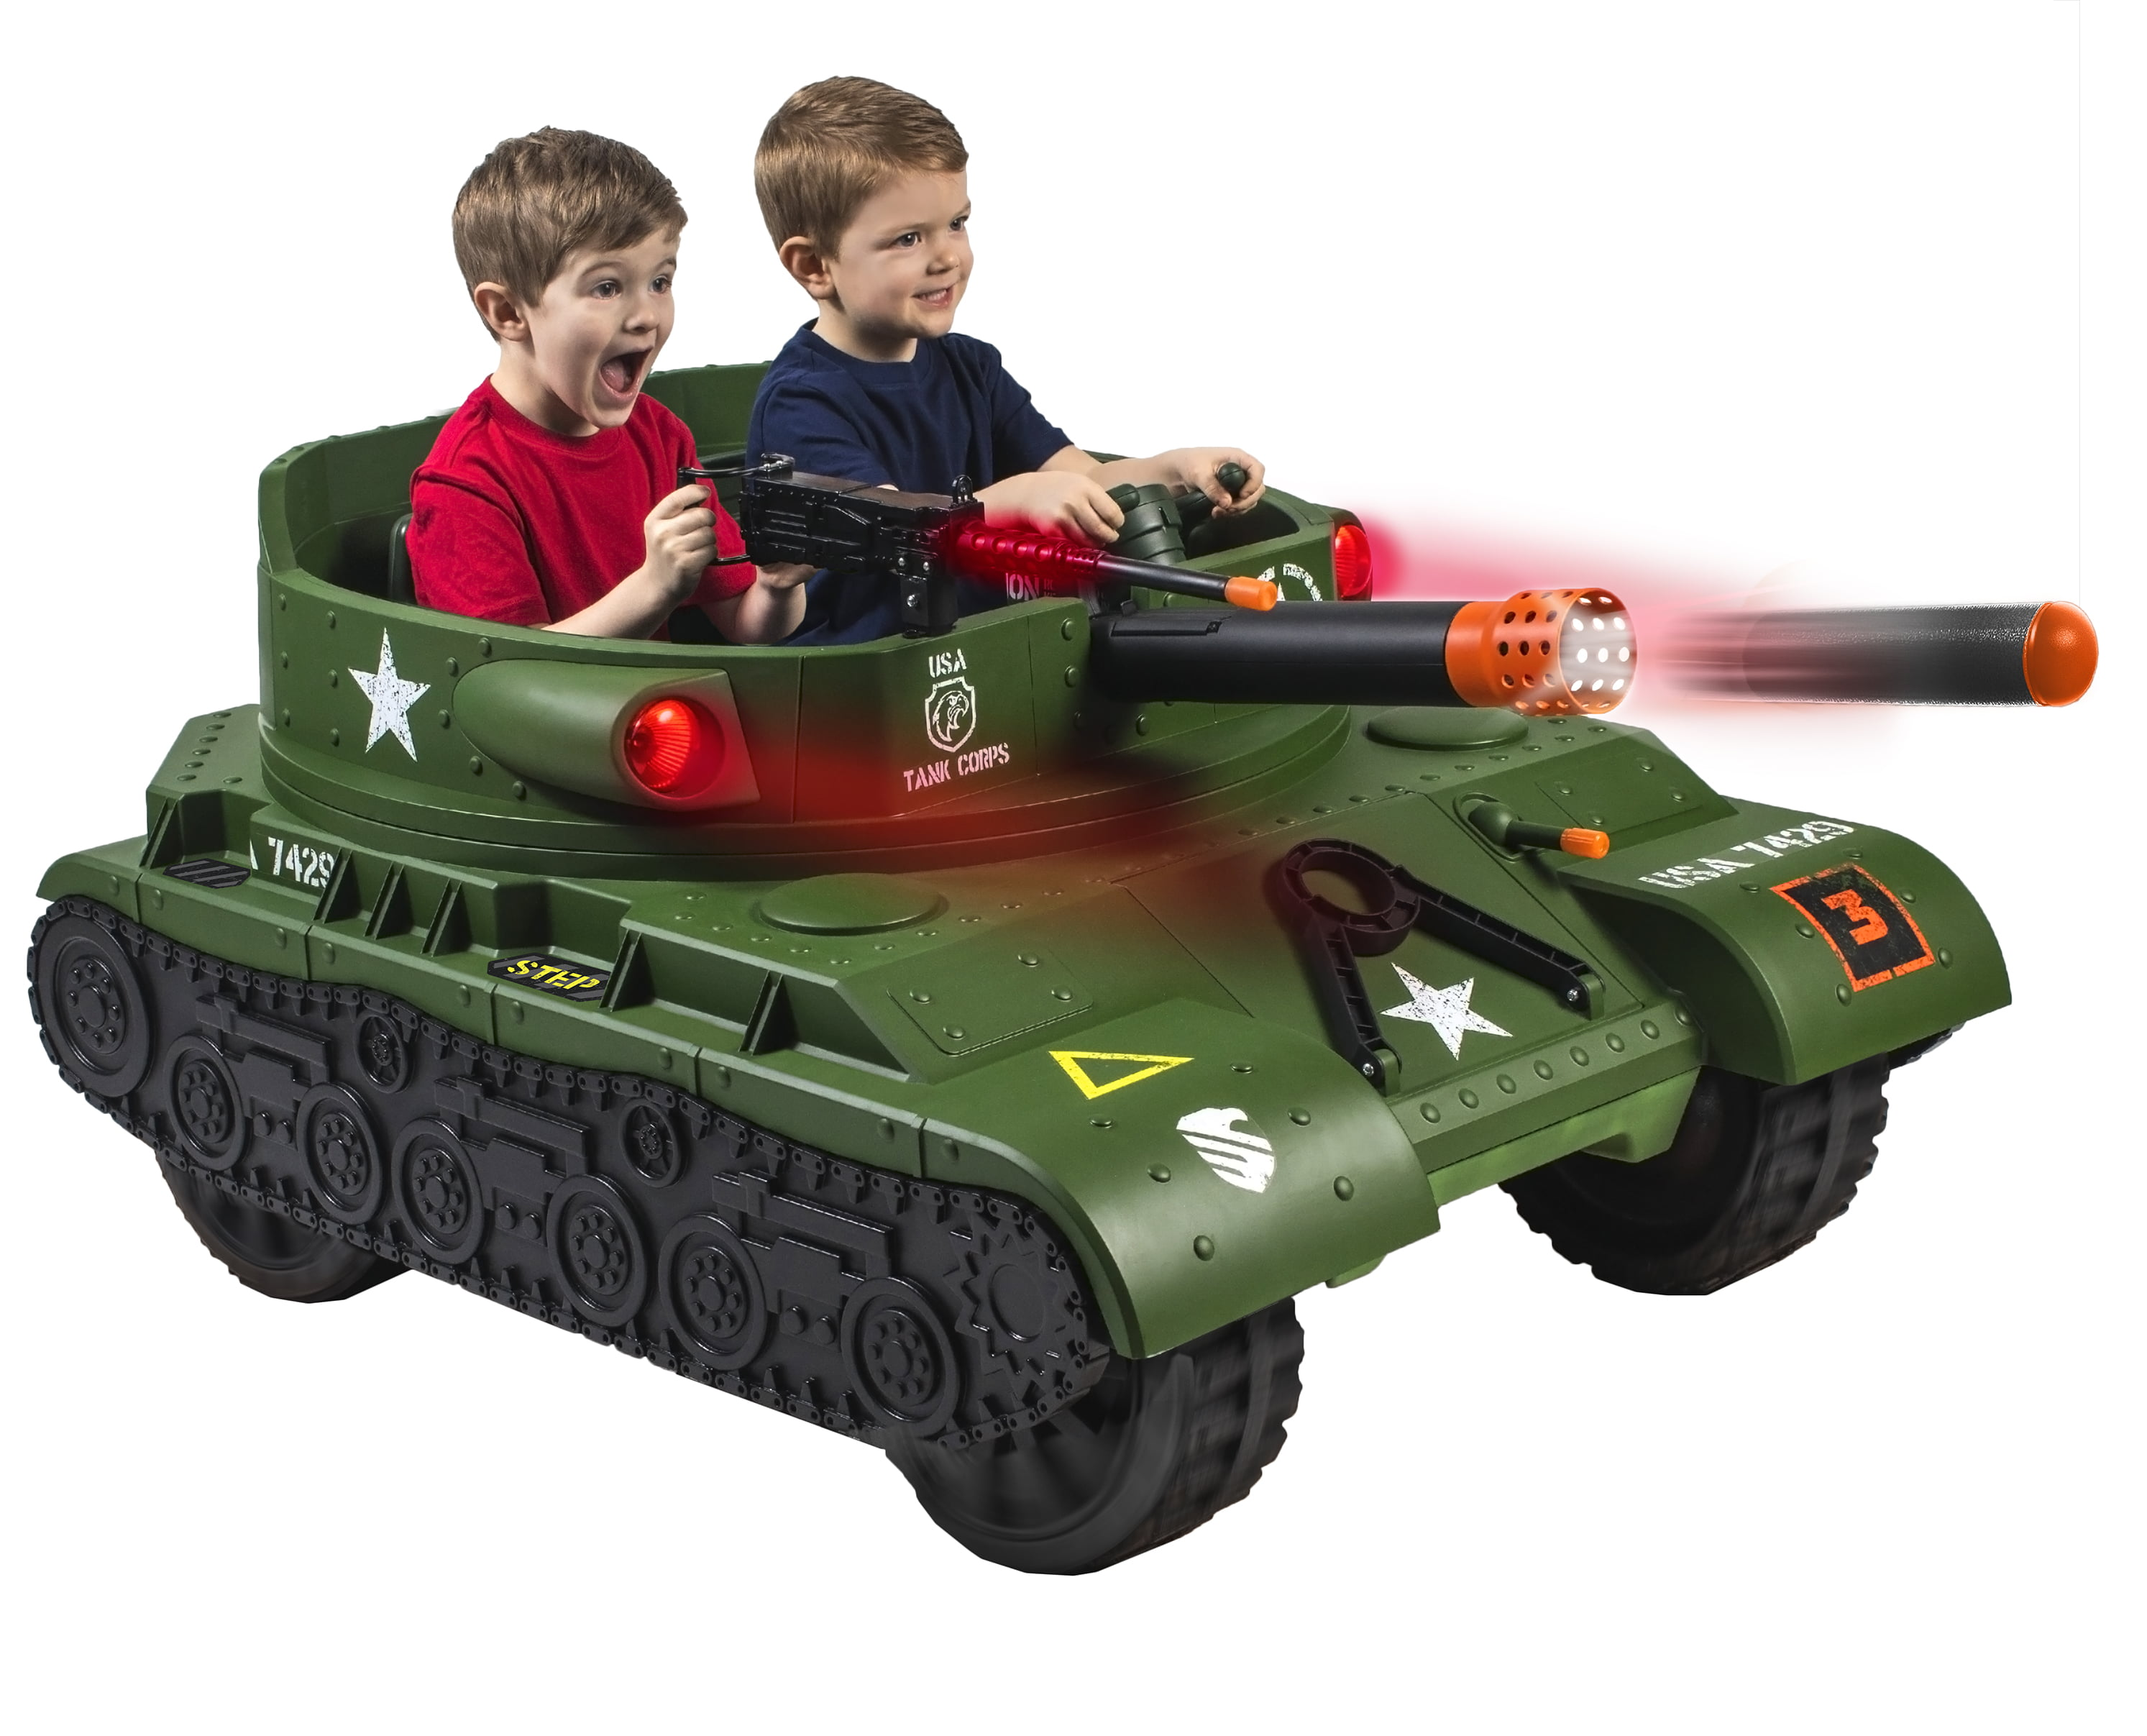 New WALMART EXCLUSIVE 24 Volt Thunder Tank Ride-On With Working Cannon and Rotating Turret! by Ballard Pacific Resources